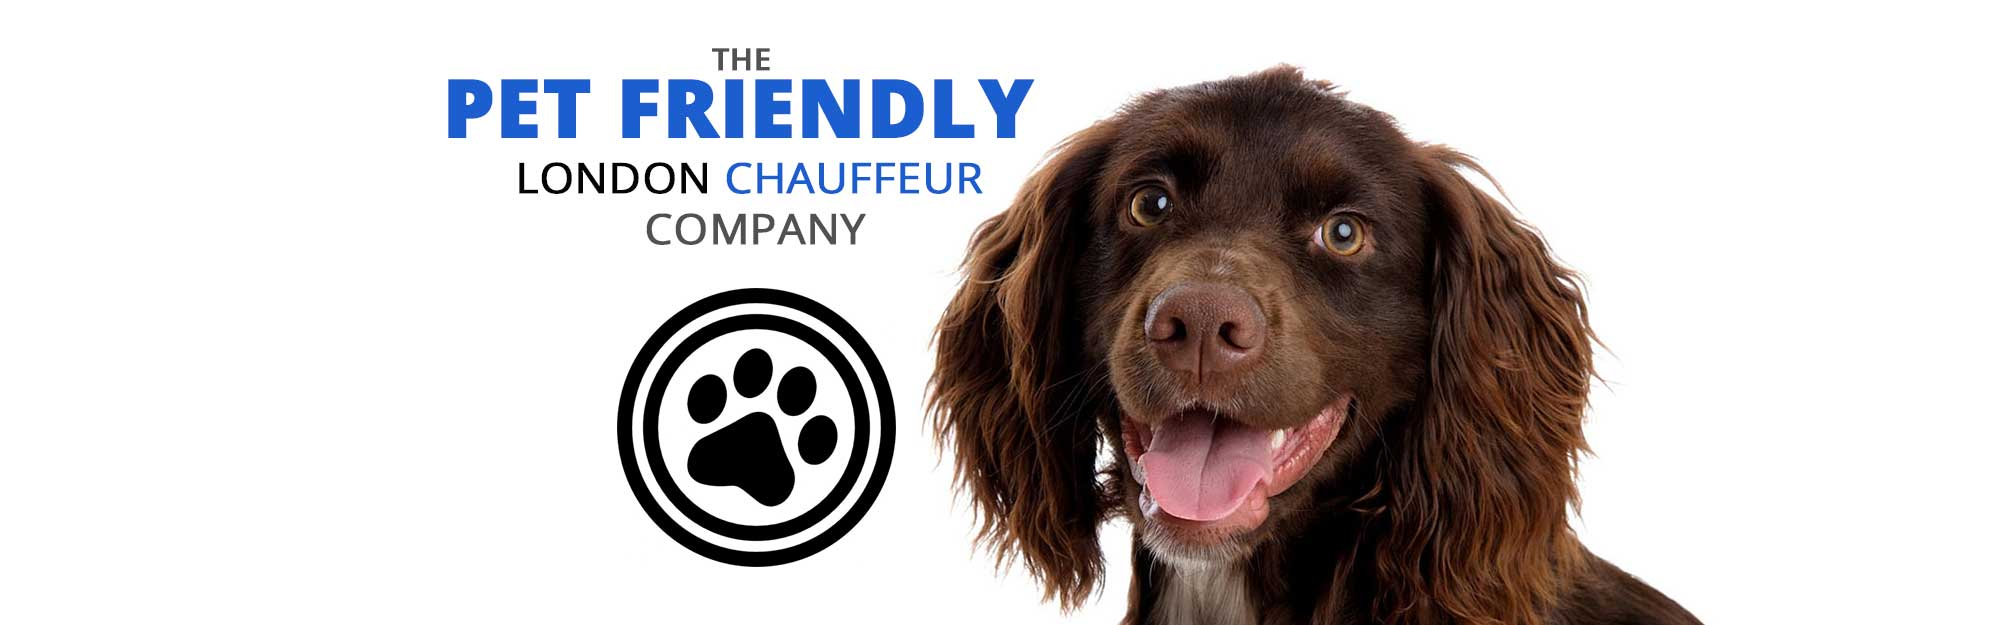 pet-friendly-london-chauffeur-company